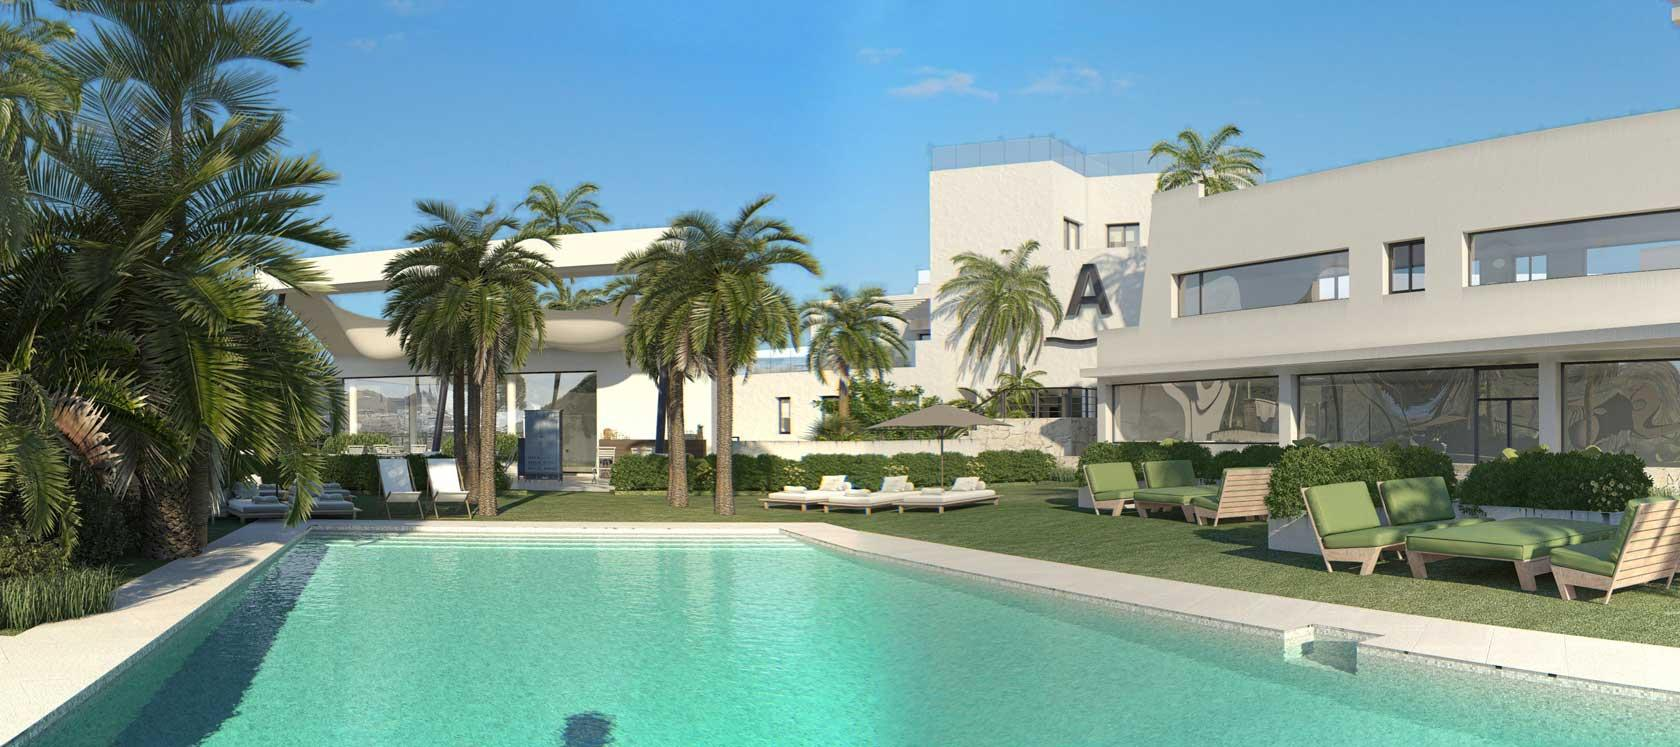 Casa Banderas Development| New build homes in Málaga